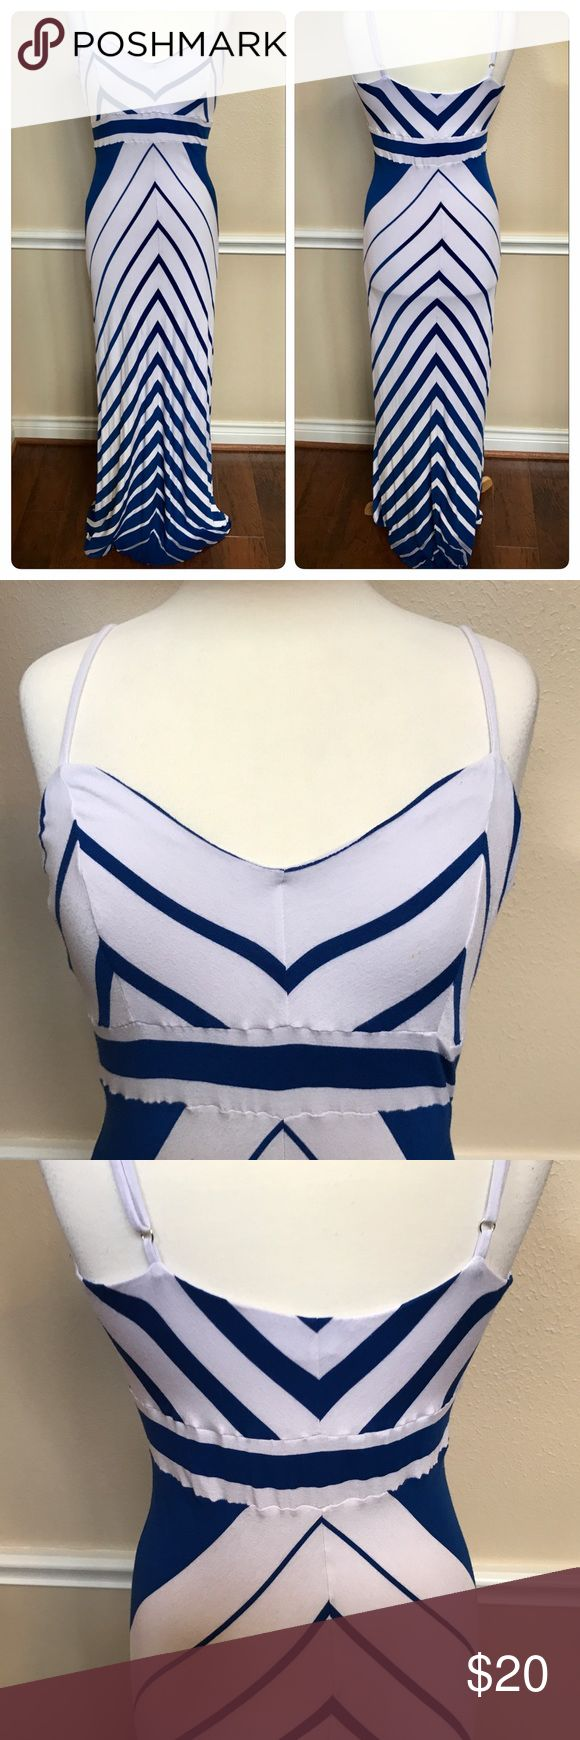 "BEBE Chevron Maxi dress Size L 🌸💕 BEBE Chevron Maxi dress Size L 🌸💕. Color is blue and white. Length is approx. 60"" long from where chest area begins to the bottom of dress. Shows some normal wear. Has some lint on the pit area and around the interior of chest area. See pictures. Also has a tiny stain in one side around chest area shown in pictures. It's a beautiful dress and still in good wearable condition. Remember to bundle and save 😊🎉 bebe Dresses Maxi"